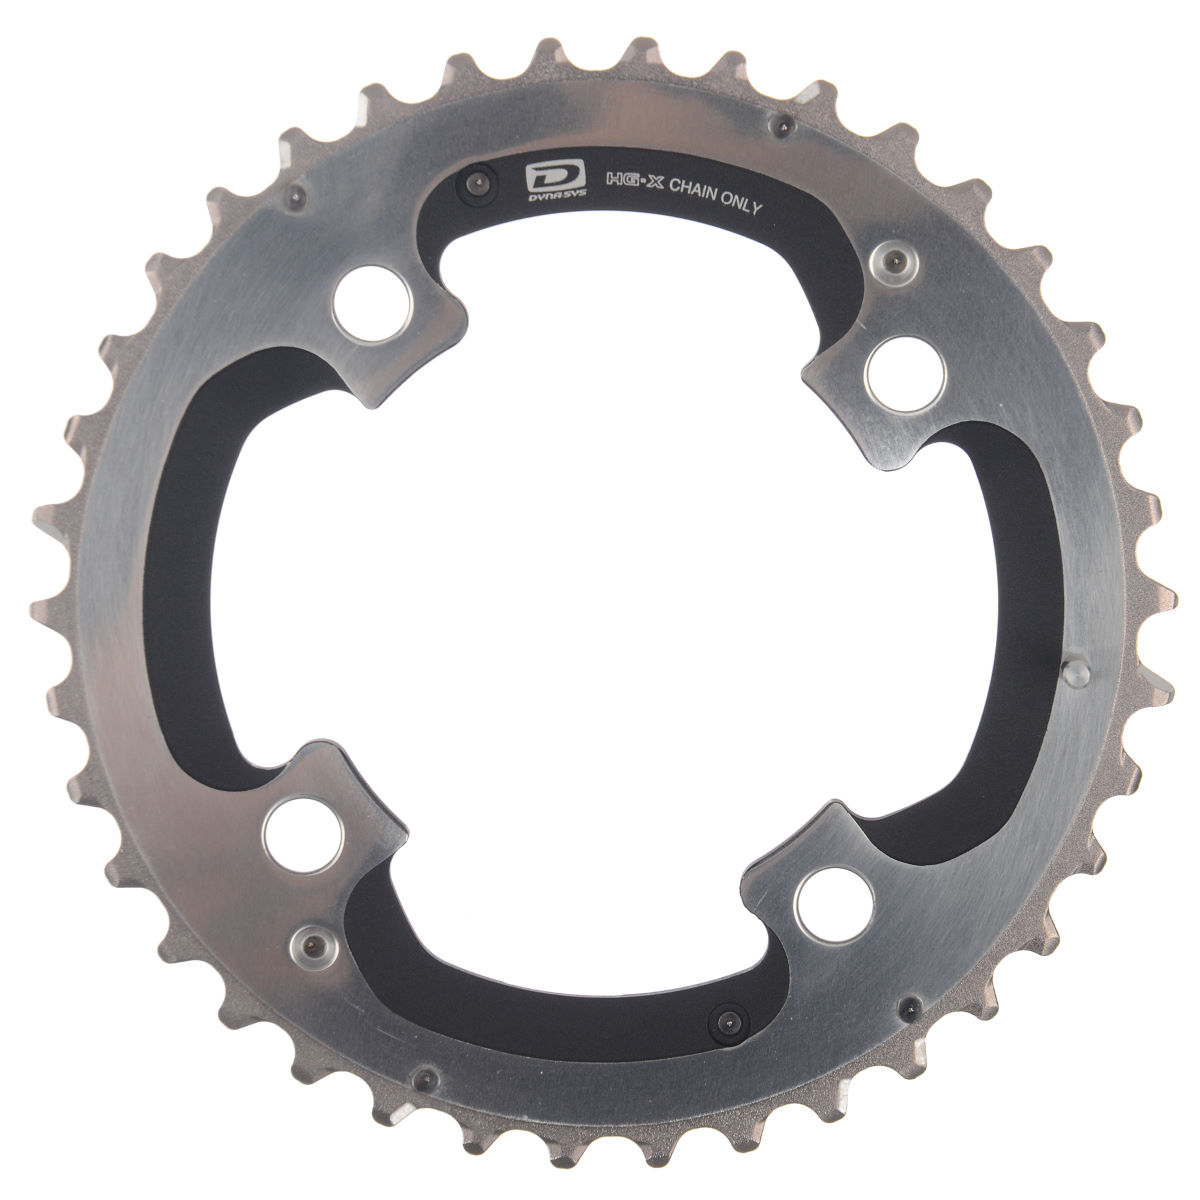 Plateau double Shimano XTR FCM980 (10 vitesses) - 38t 10 Speed